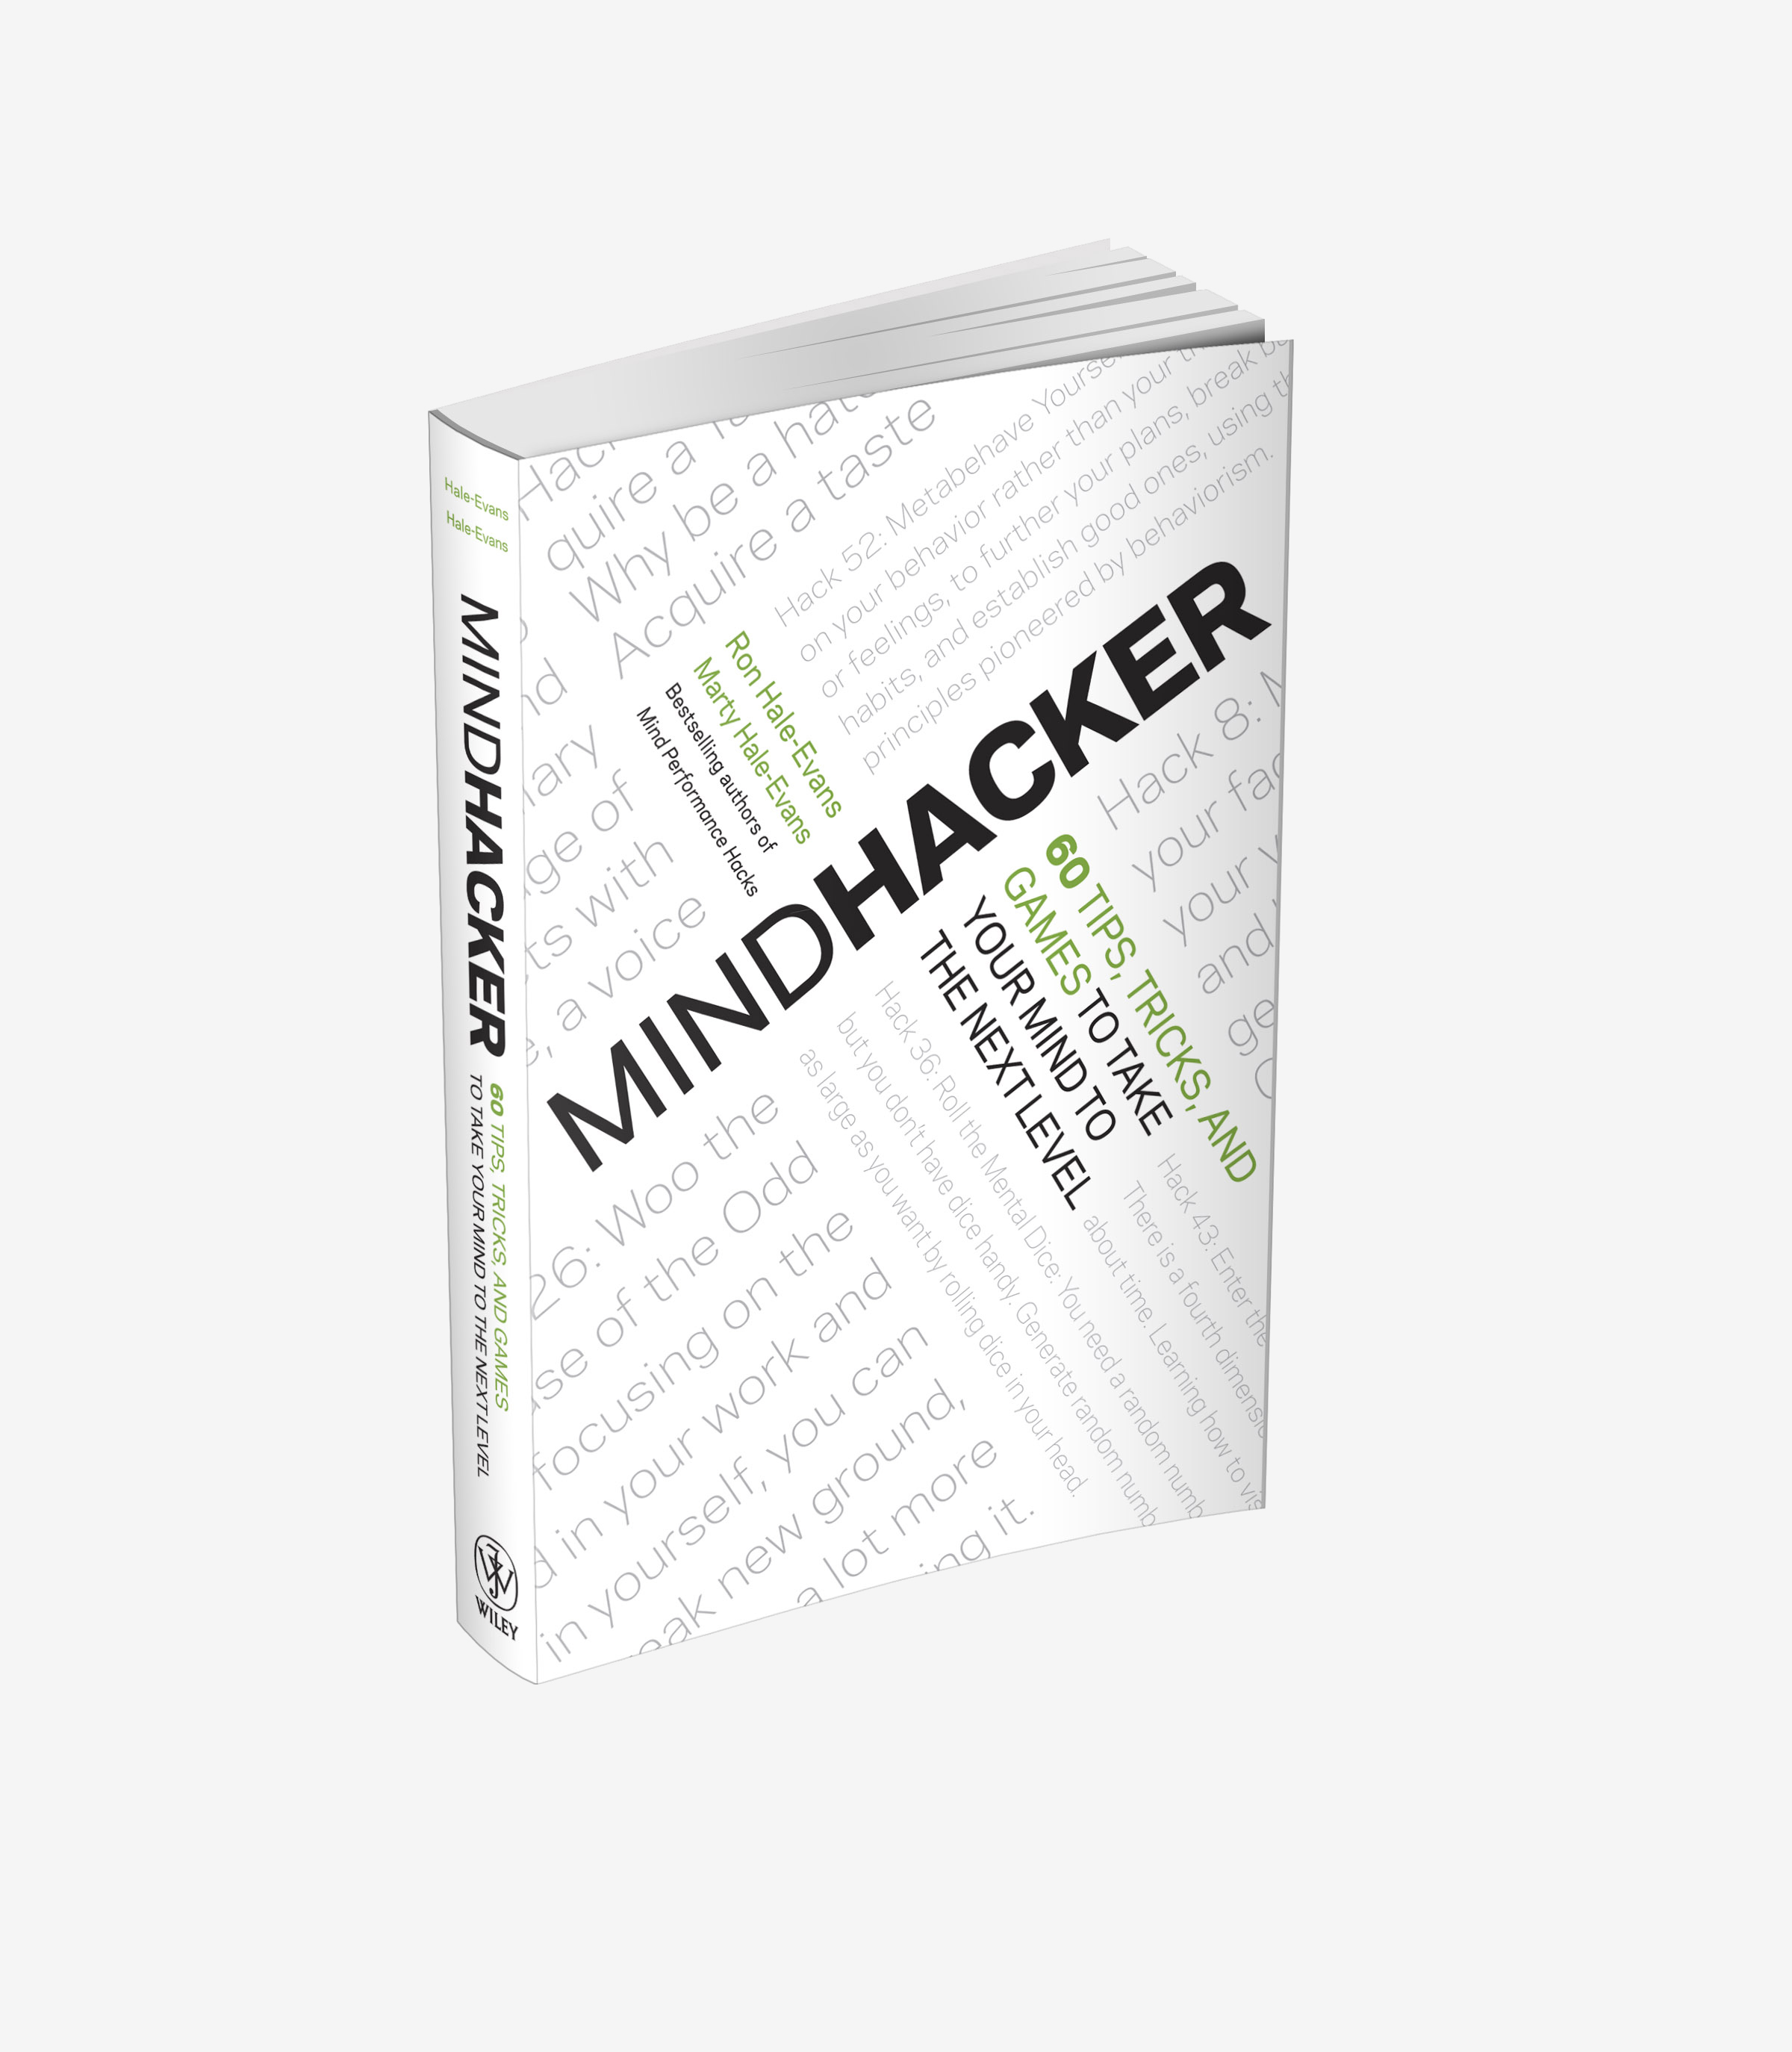 MindHacker Book Cover